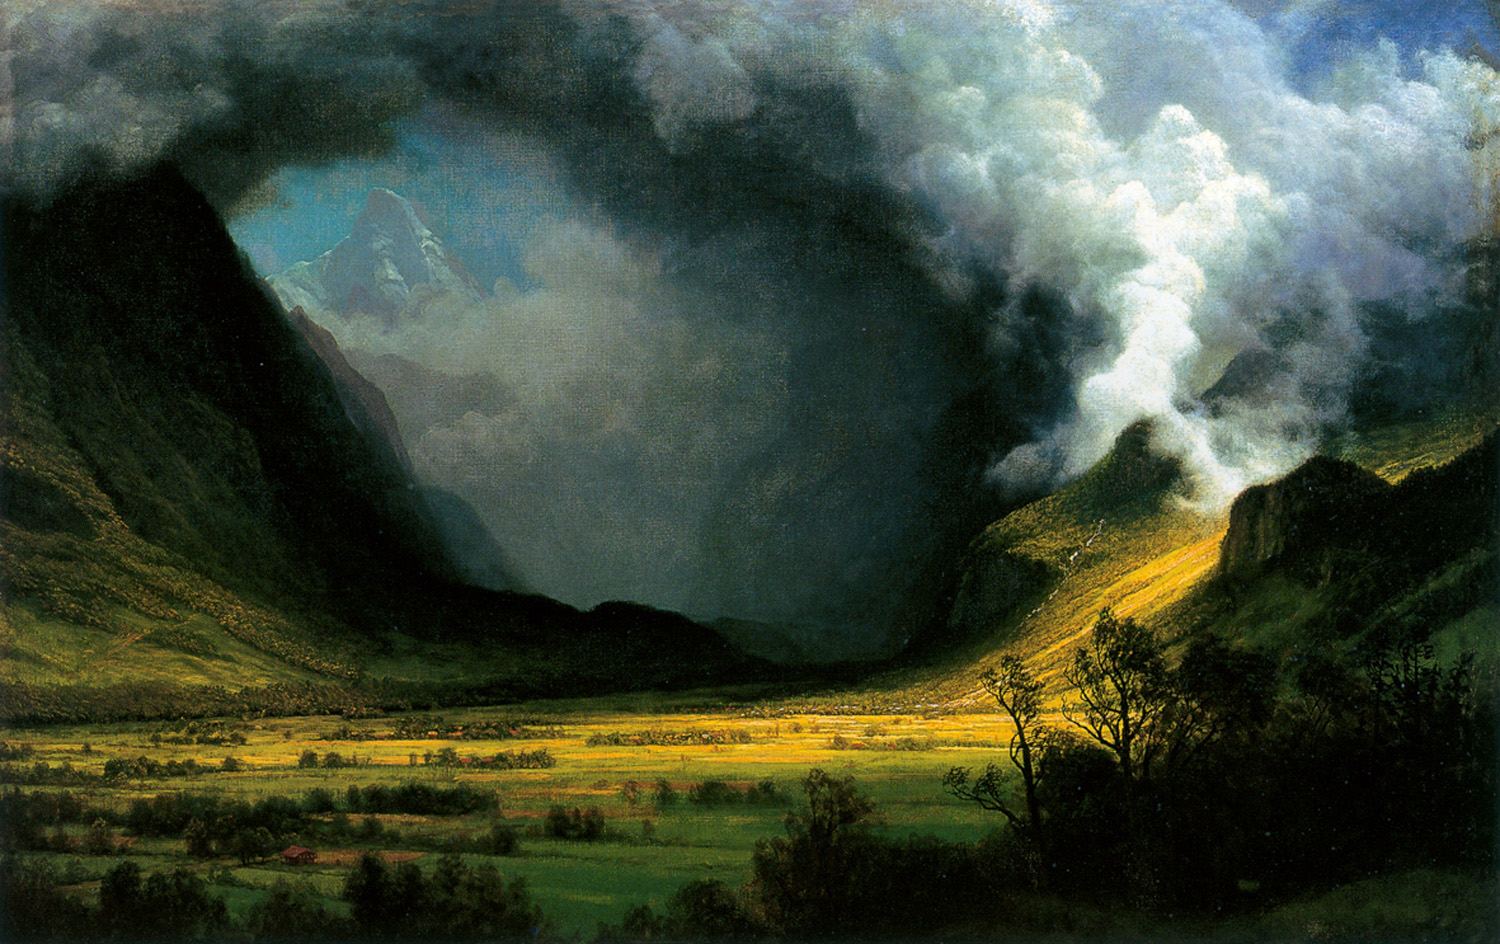 Storm in the Mountains, by Albert Bierstadt, circa 1870